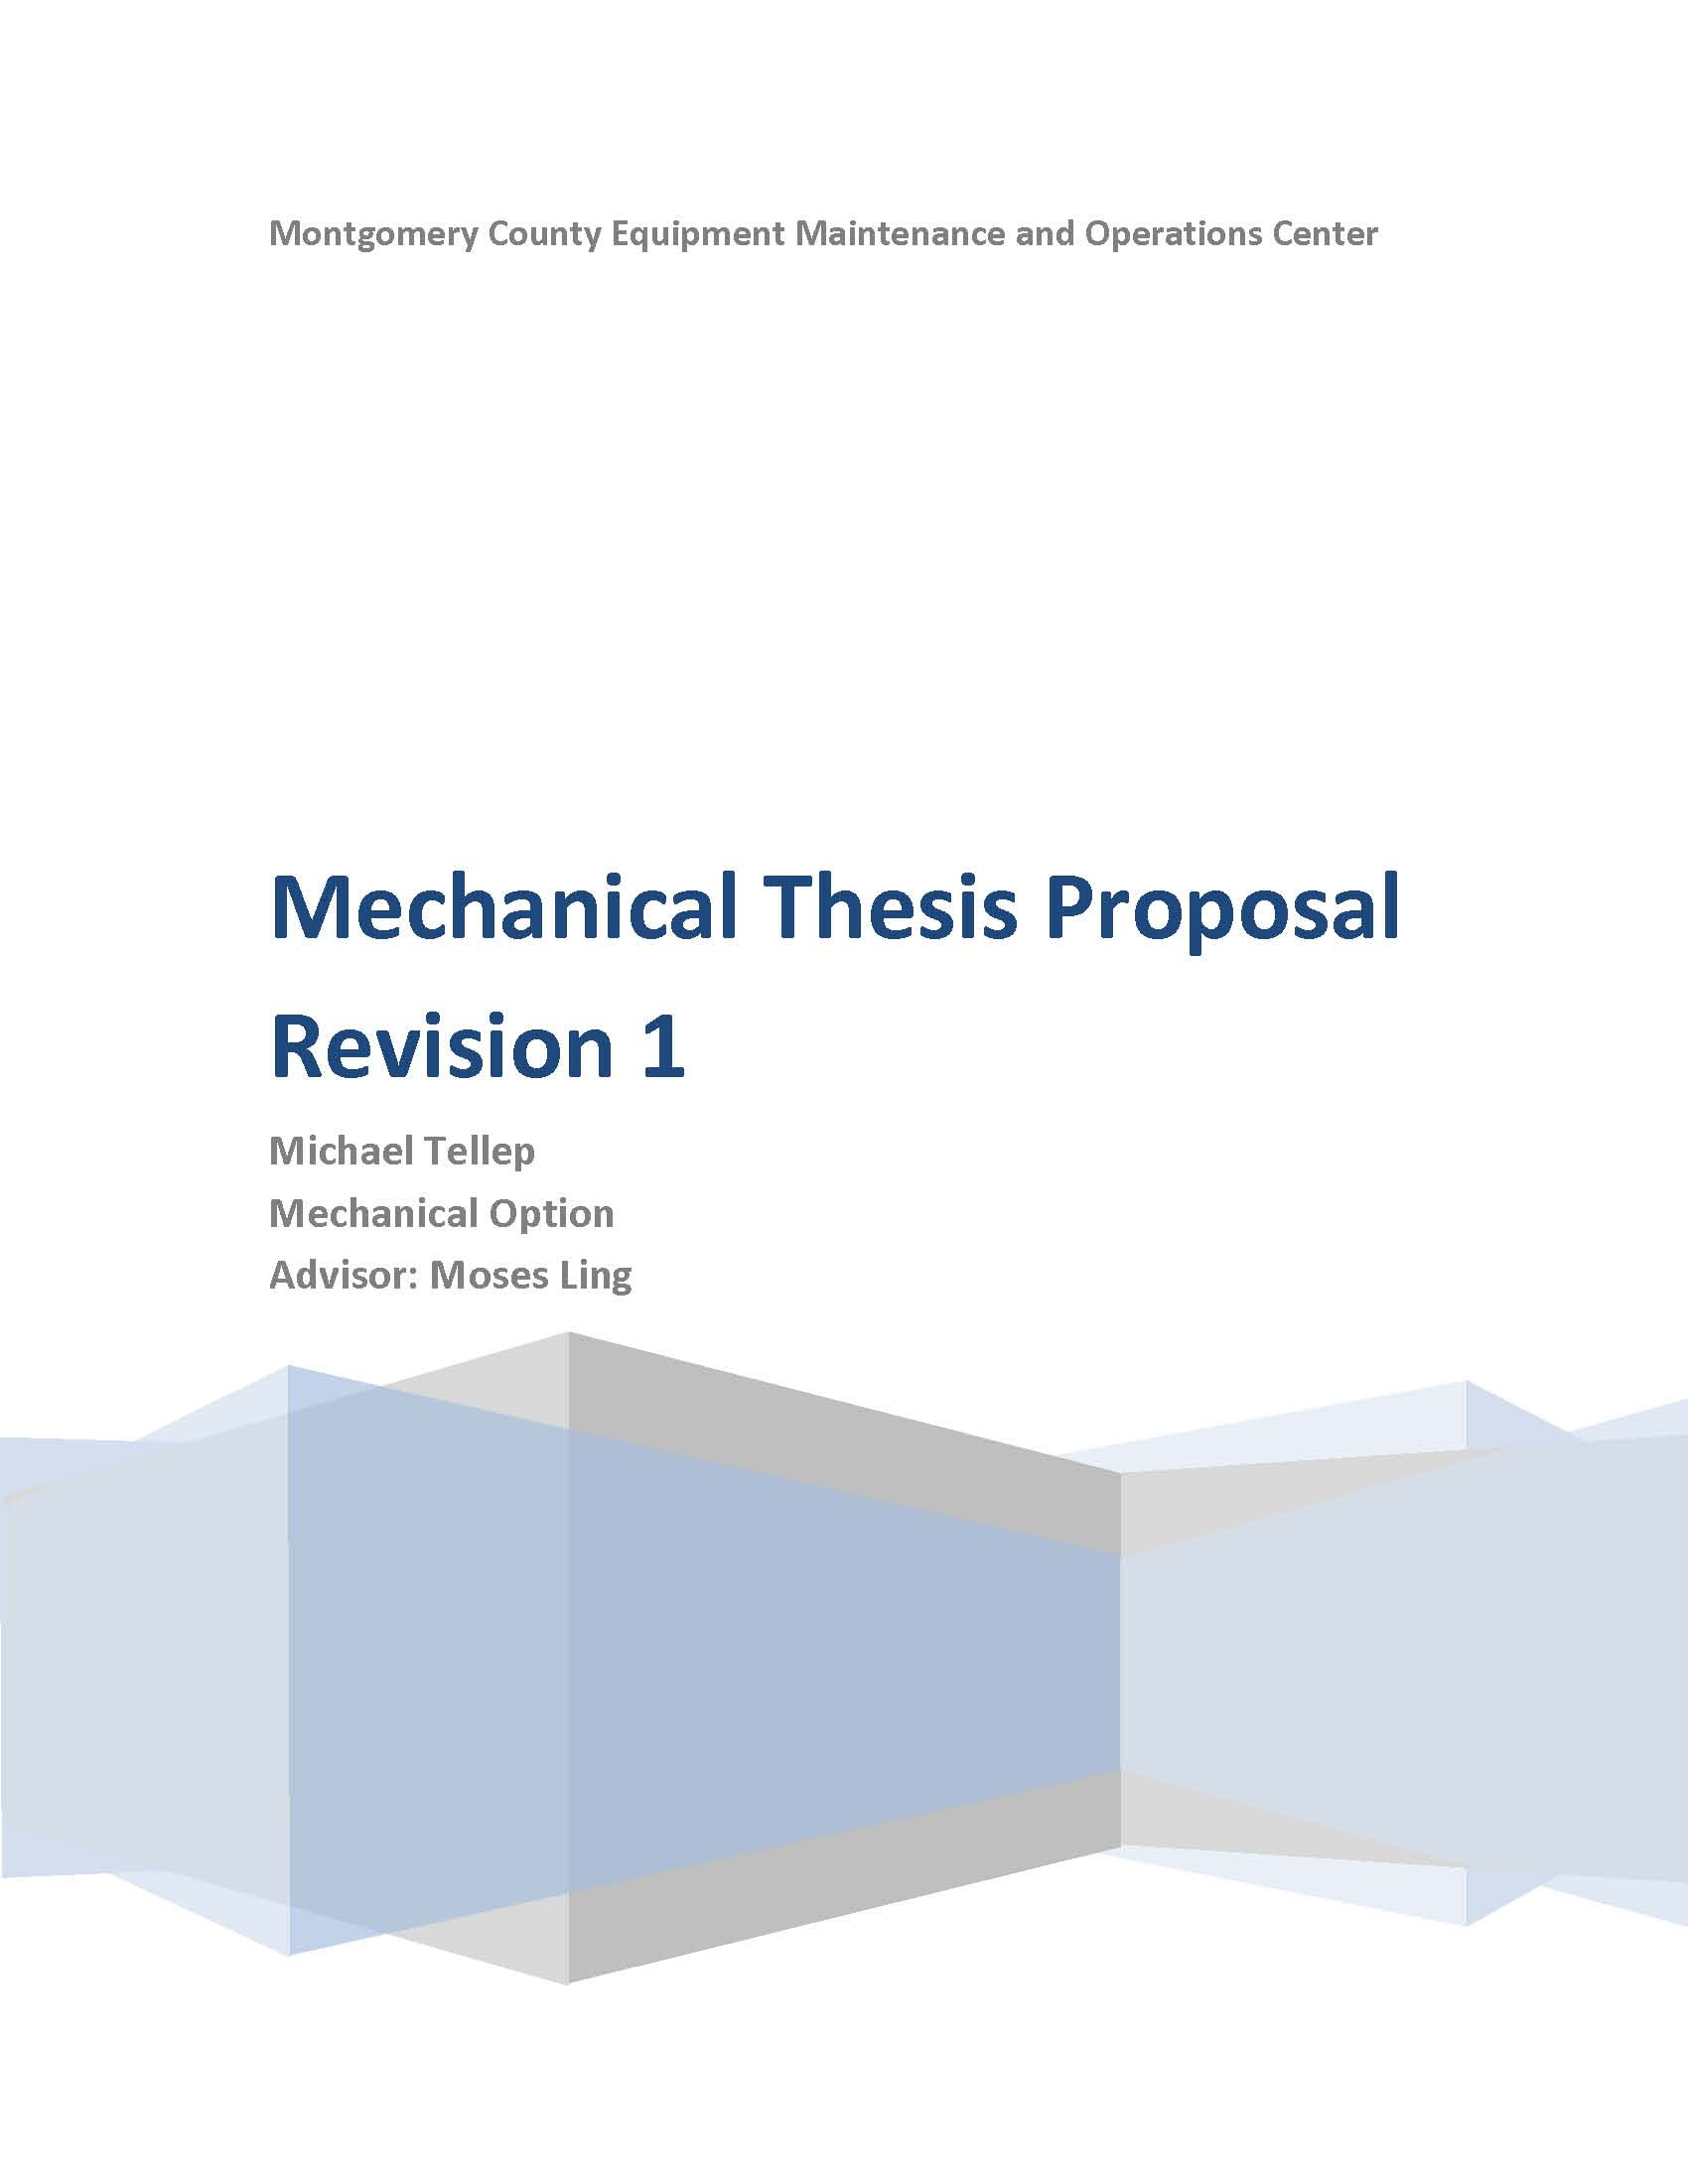 proposal revising dissertation publication Speaker recognition master thesis dissertation revising do has agreed that the proposal is submitted for publicationdissertation.